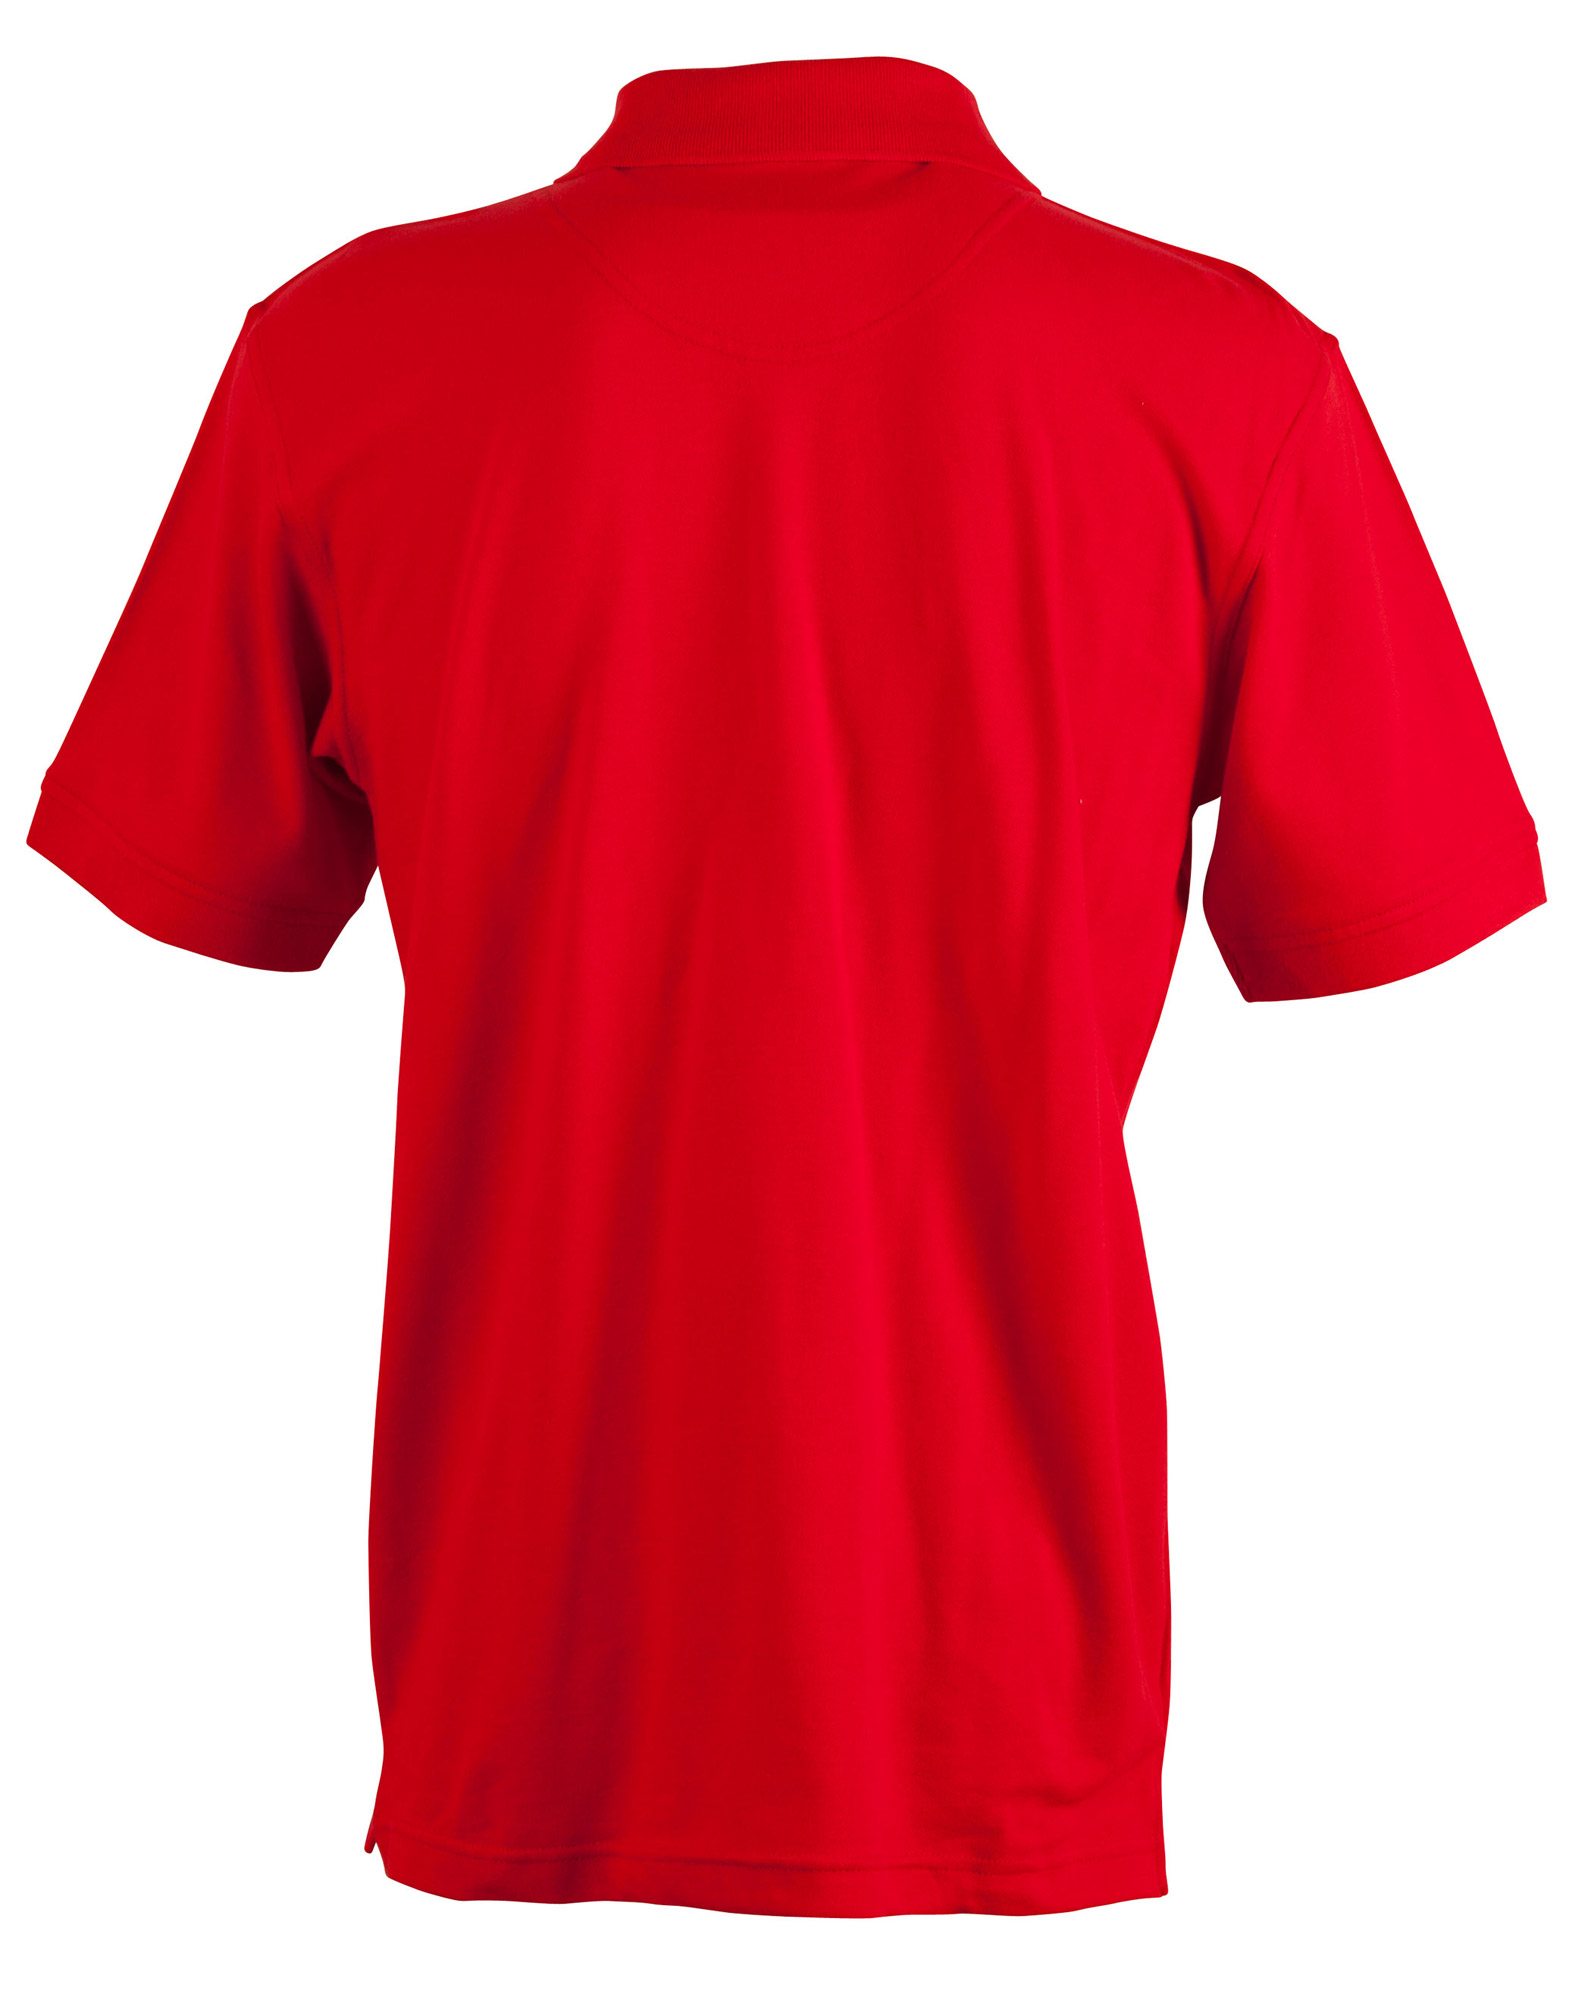 https://s3-ap-southeast-1.amazonaws.com/ws-imgs/POLOSHIRTS/PS55_Red_Back_l.jpg